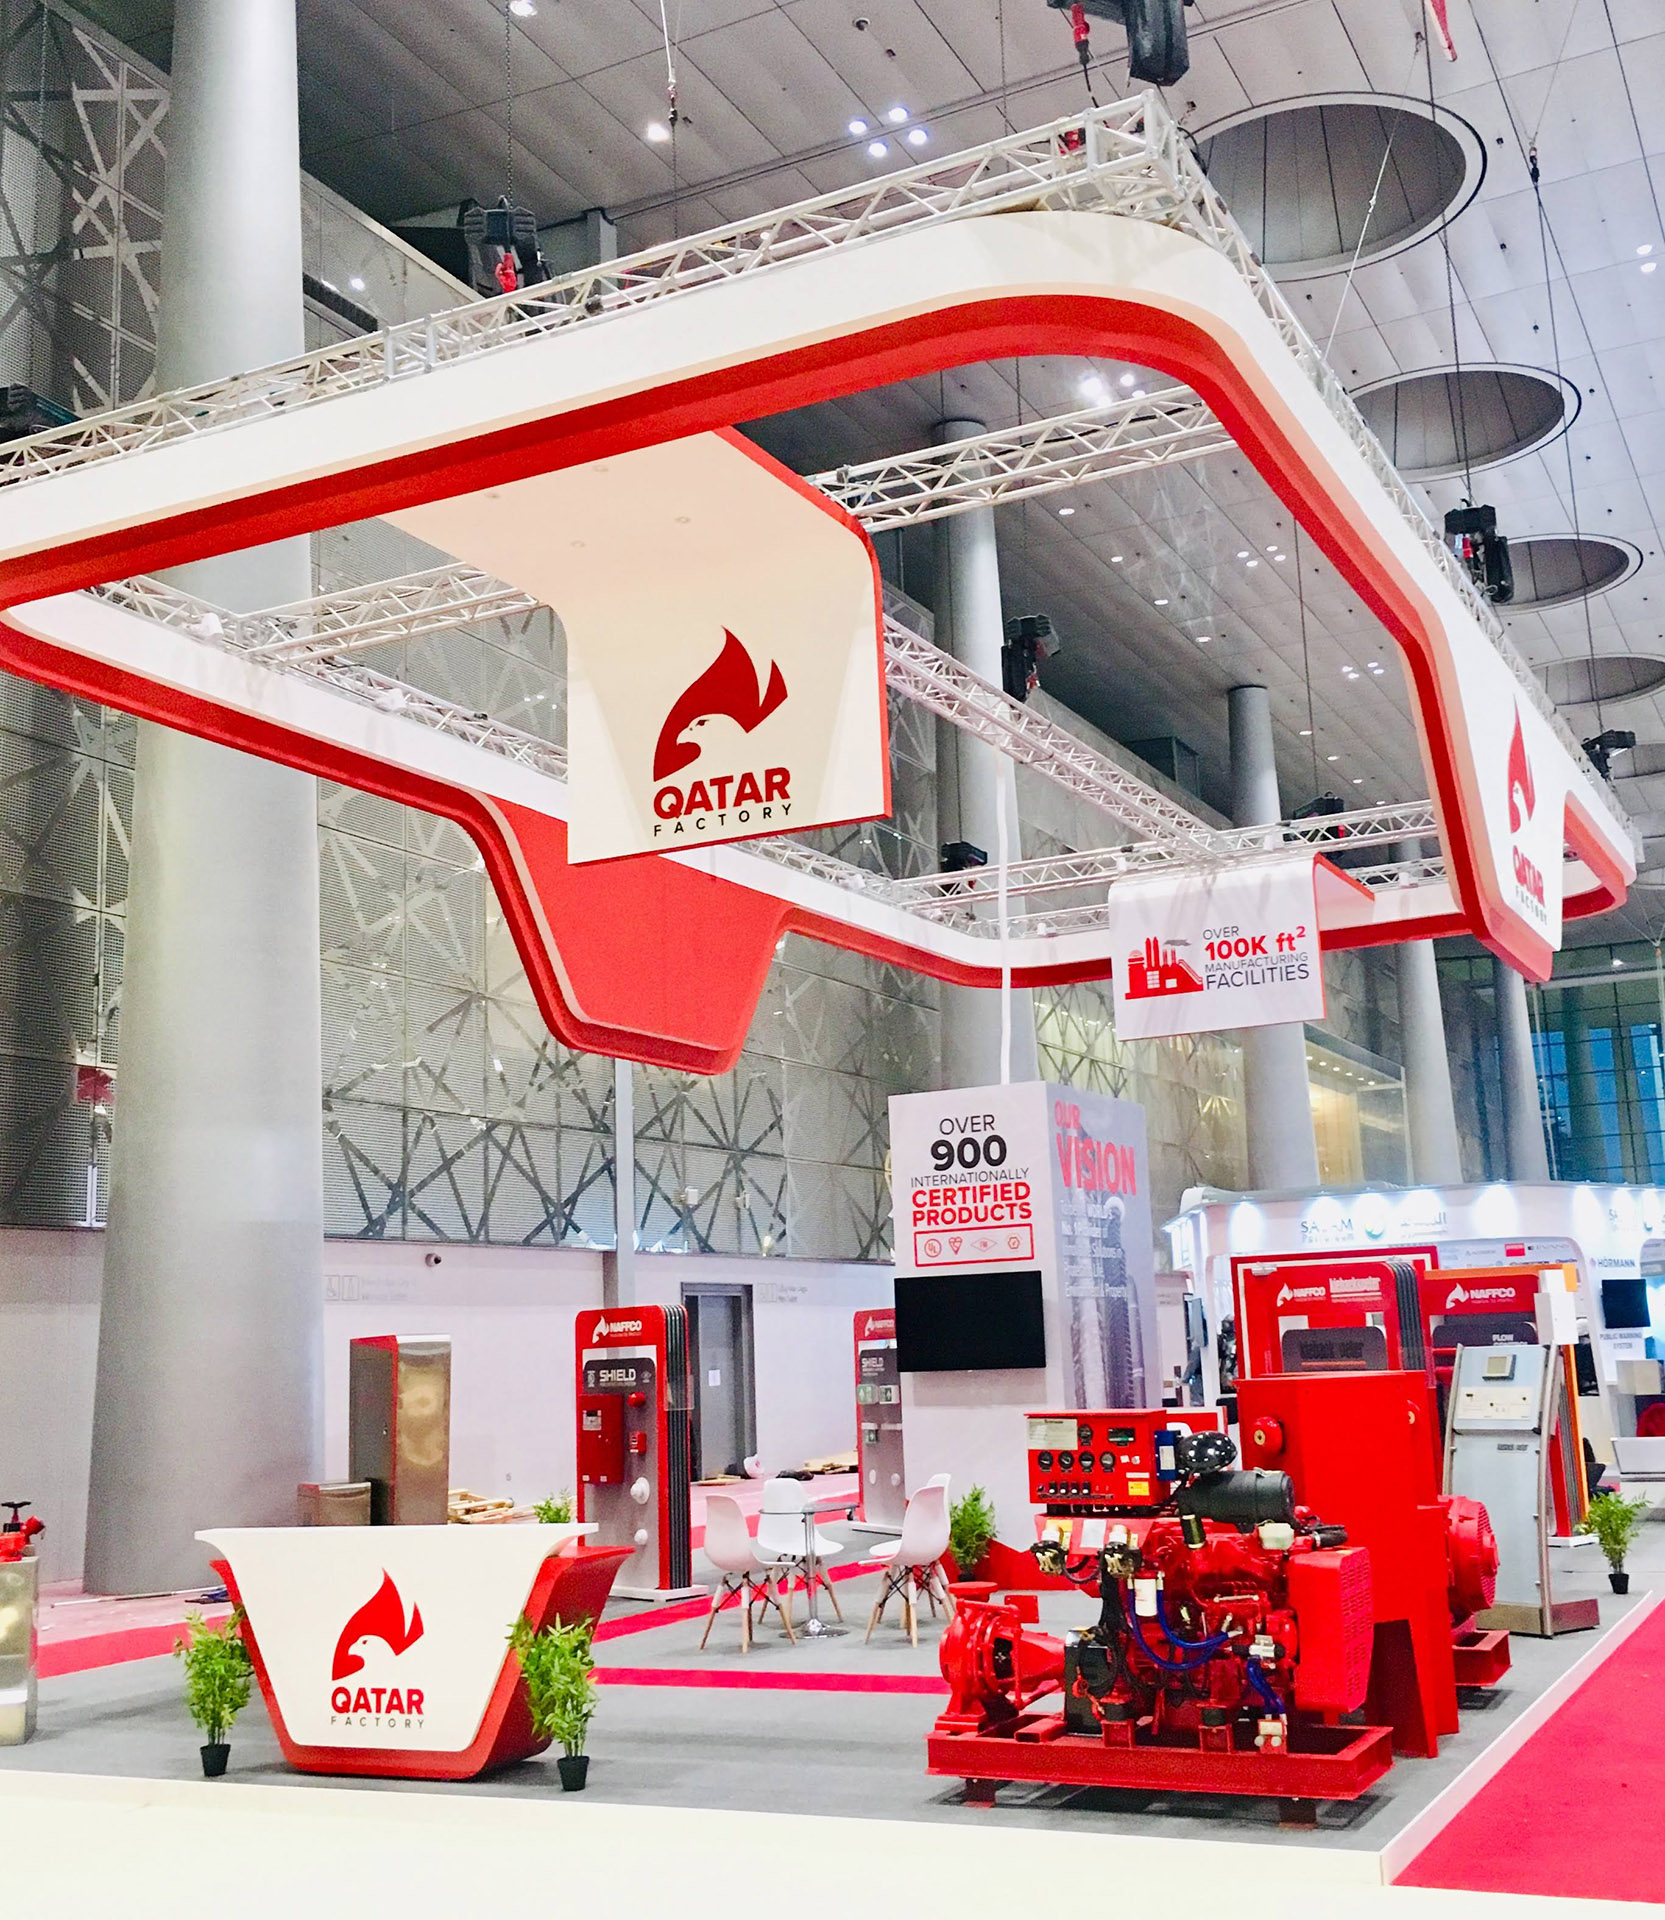 A stunning exhibition stand for Qatar Factory - designed, fabricated and installed by ME Visual, Qatar